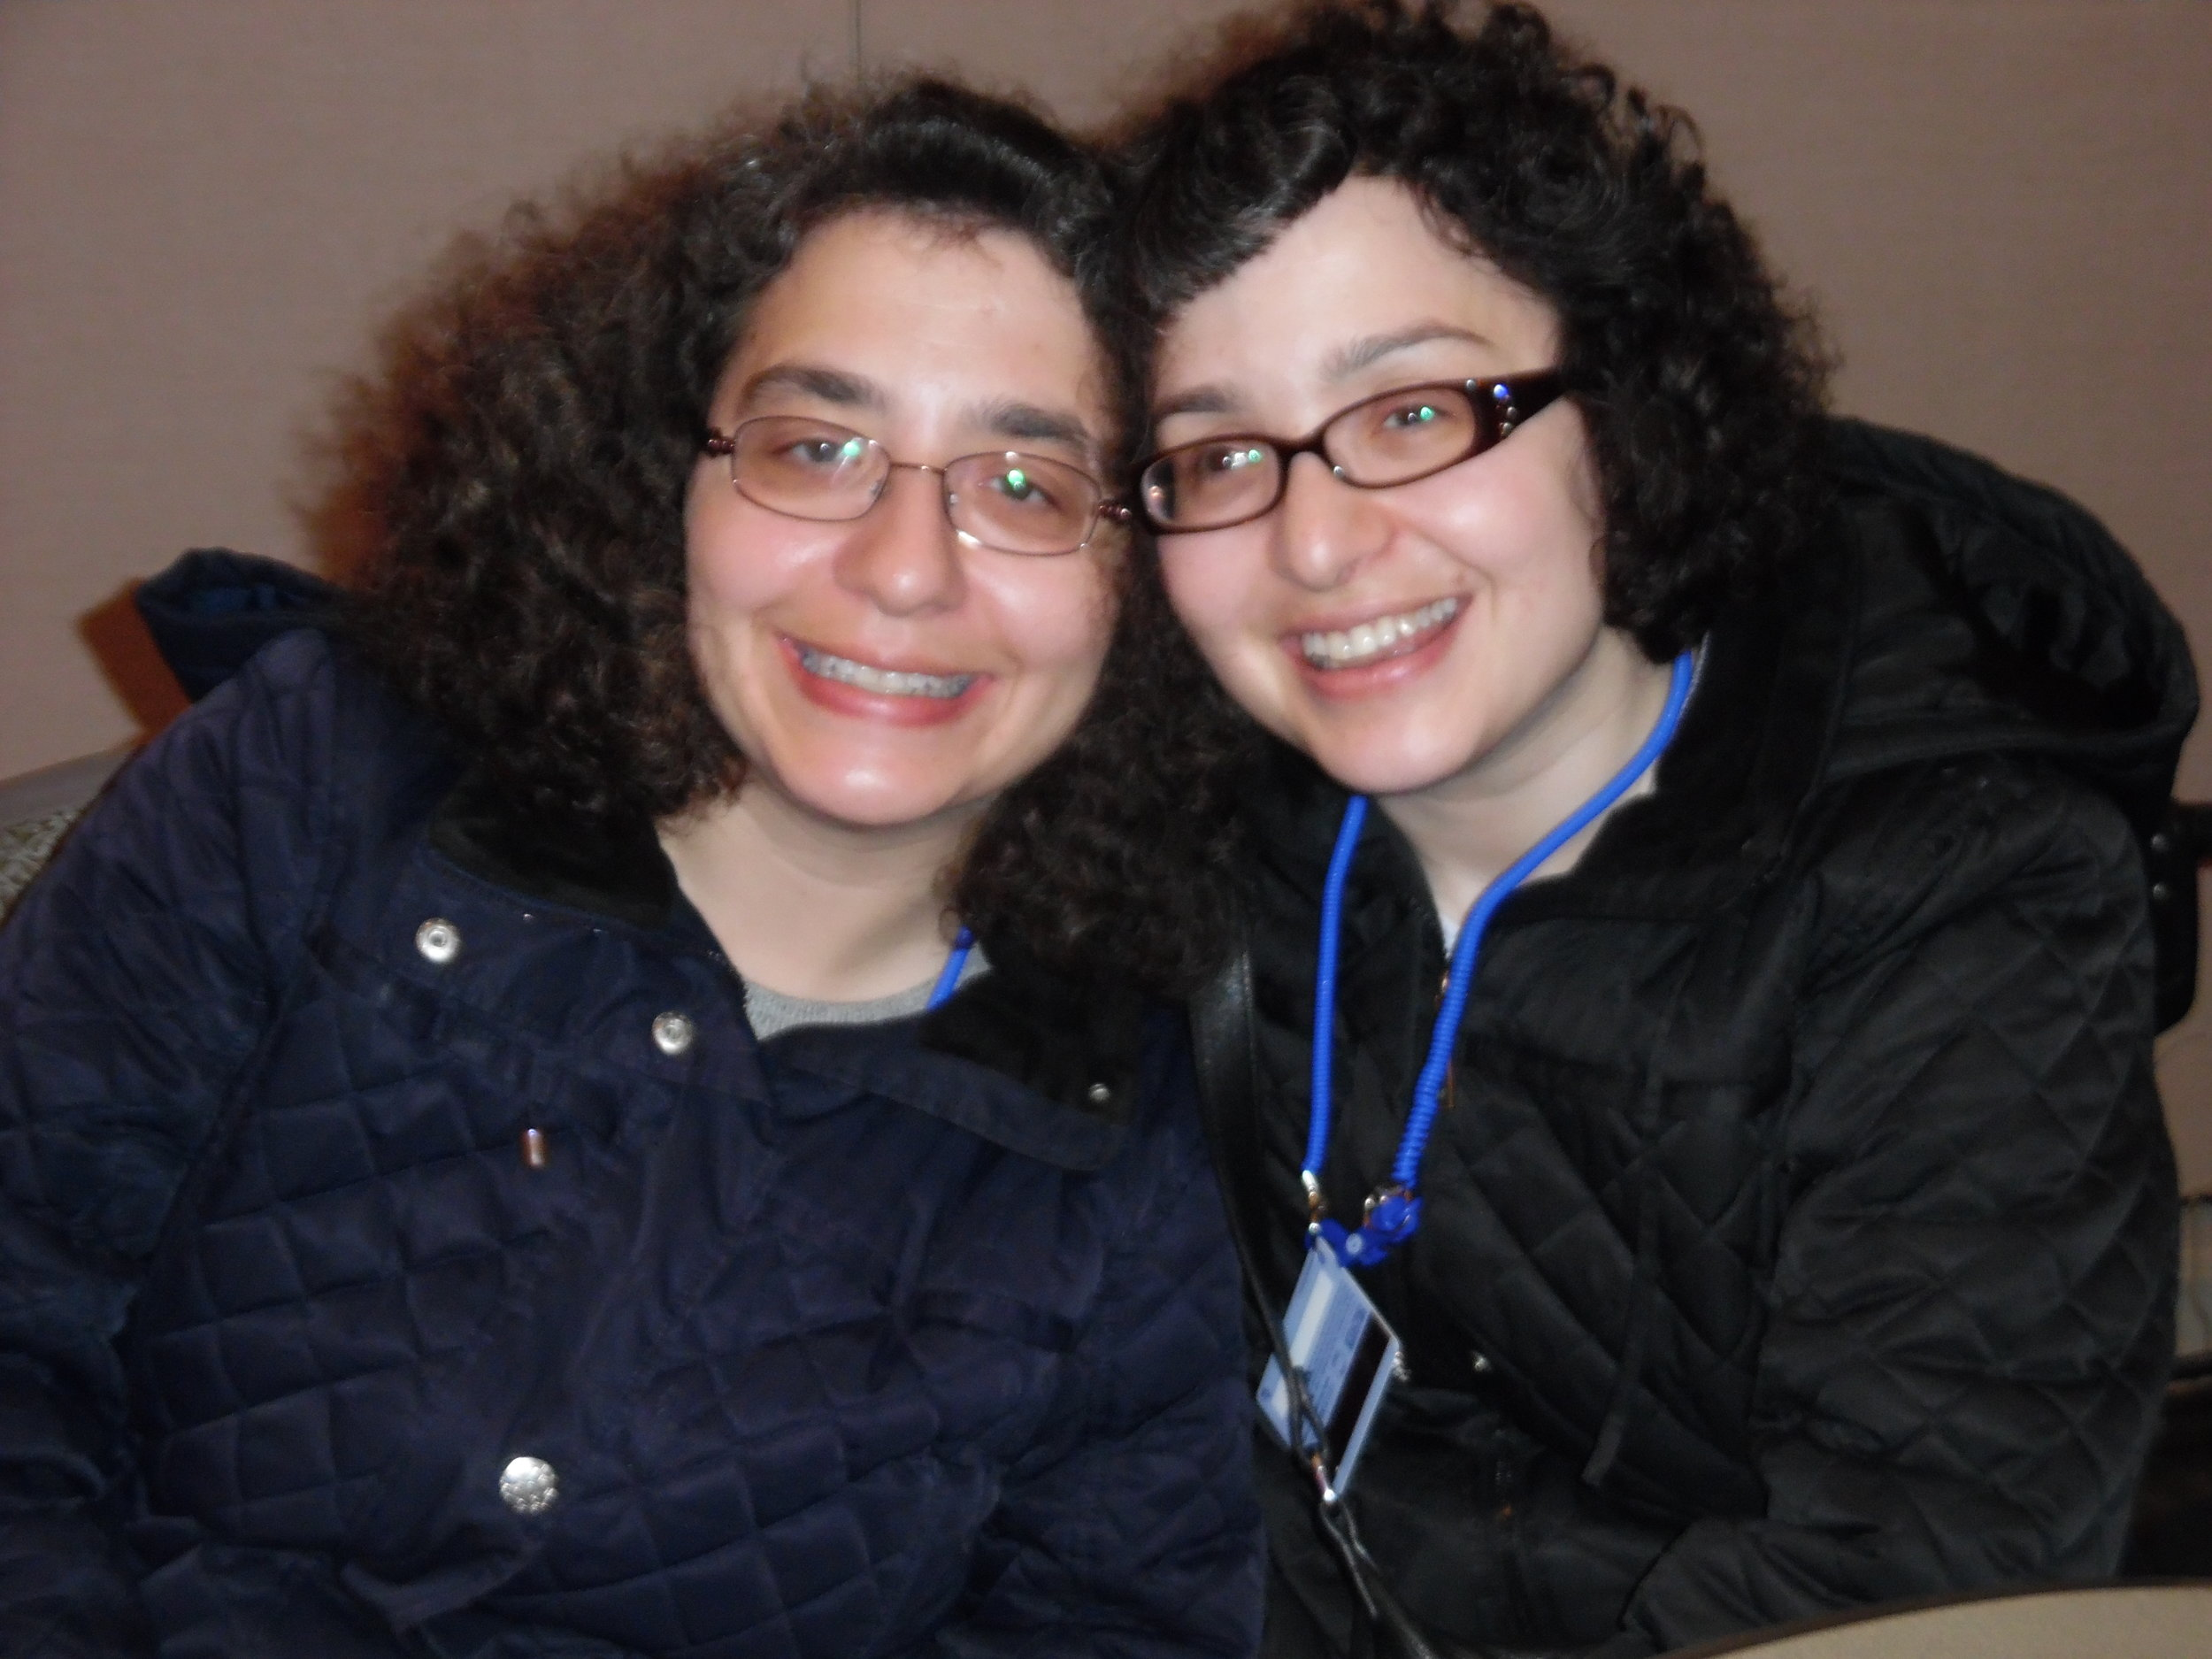 Loyal ETA fans, and sisters, Maria (left) and Oni waiting for the  Gordon Hendricks ' concert to begin in Ballroom D at the Scotiabank Convention Centre, October 21st, 2017.